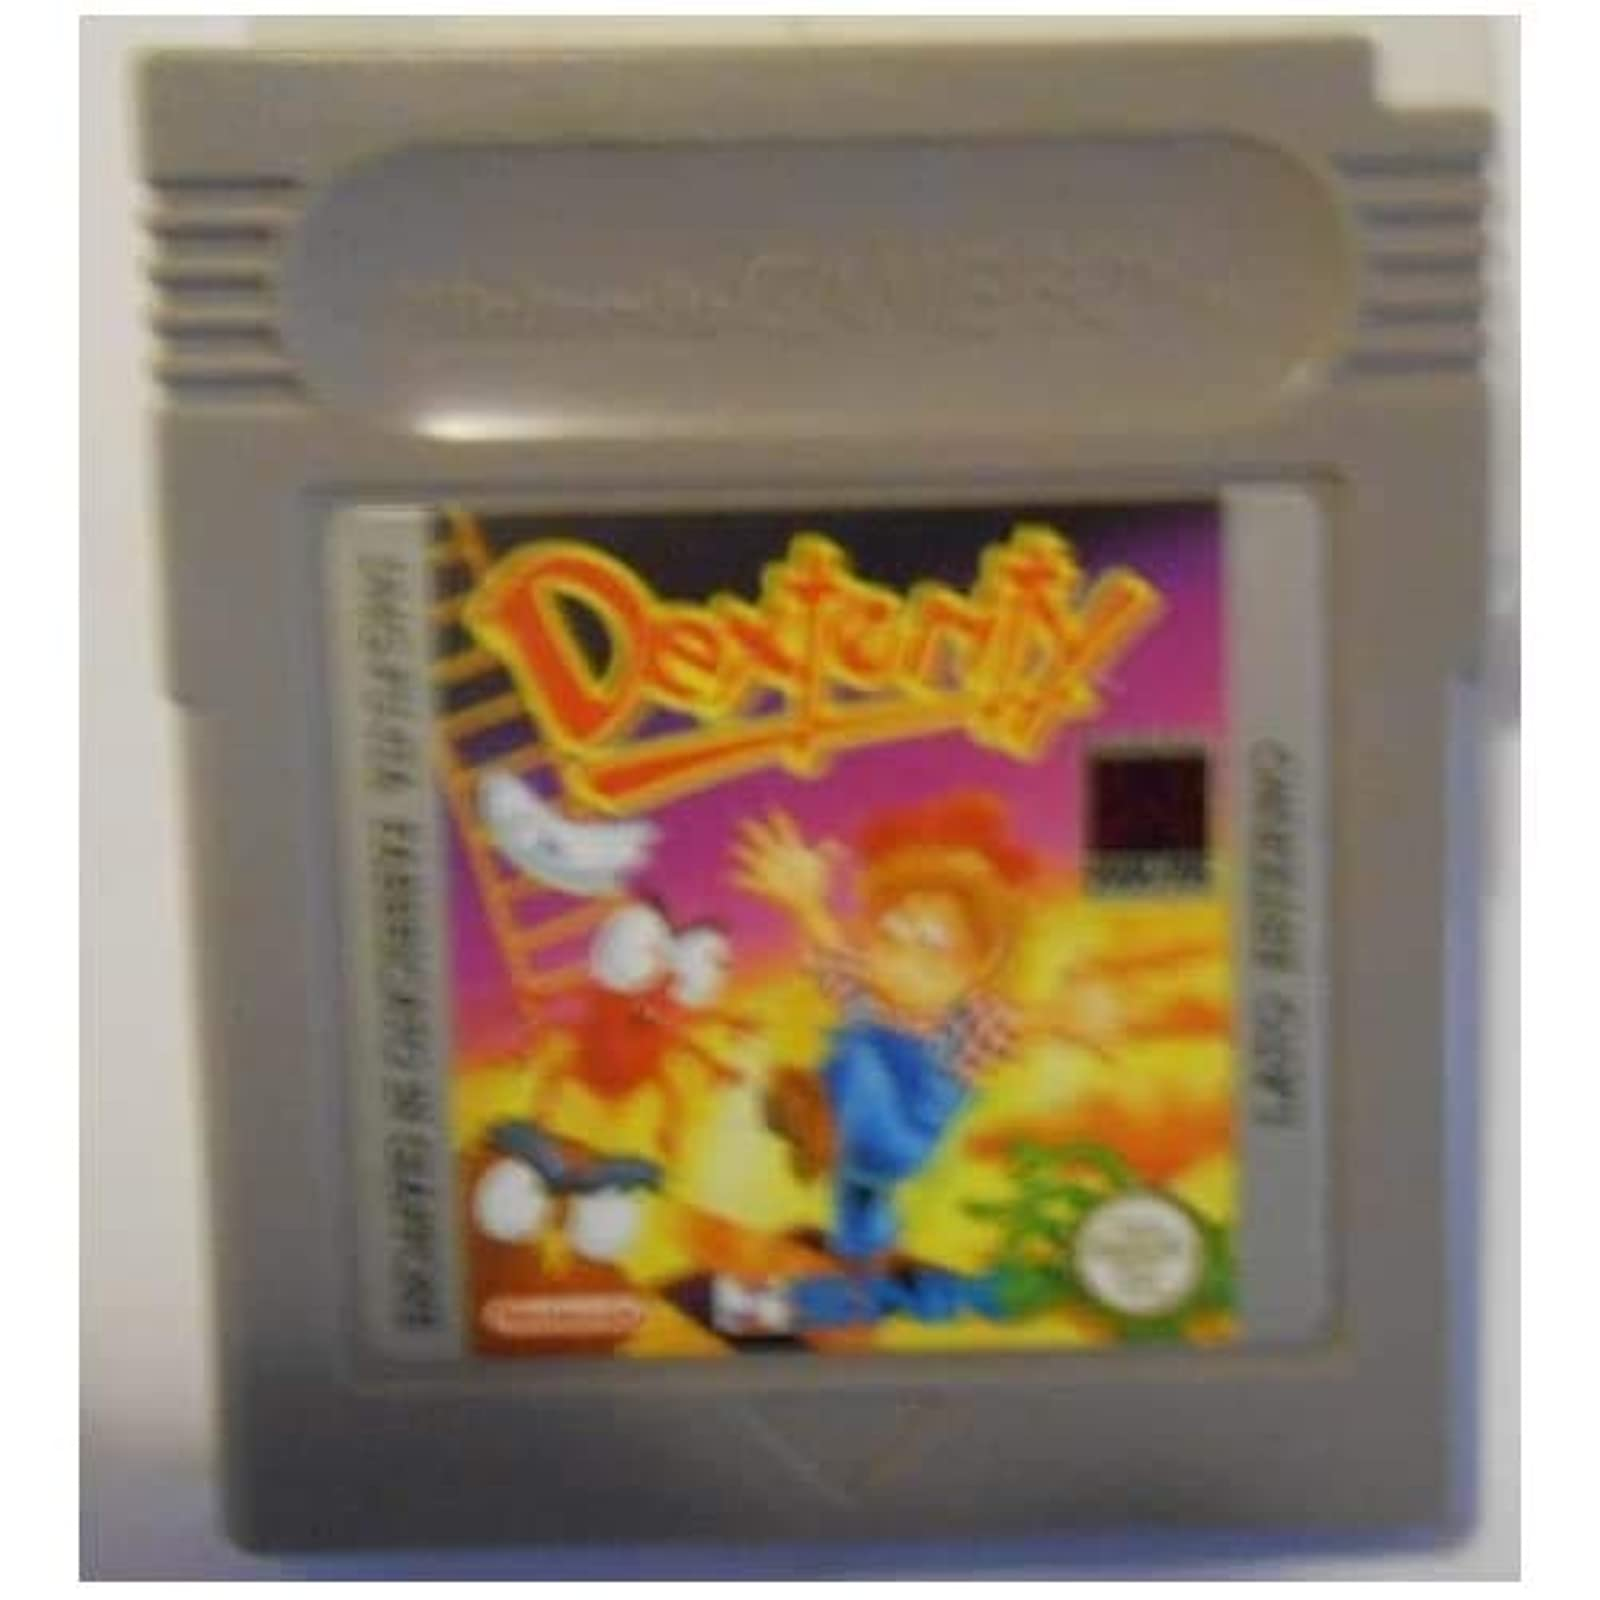 Dexterity Game Boy Game On Game Boy On Gameboy